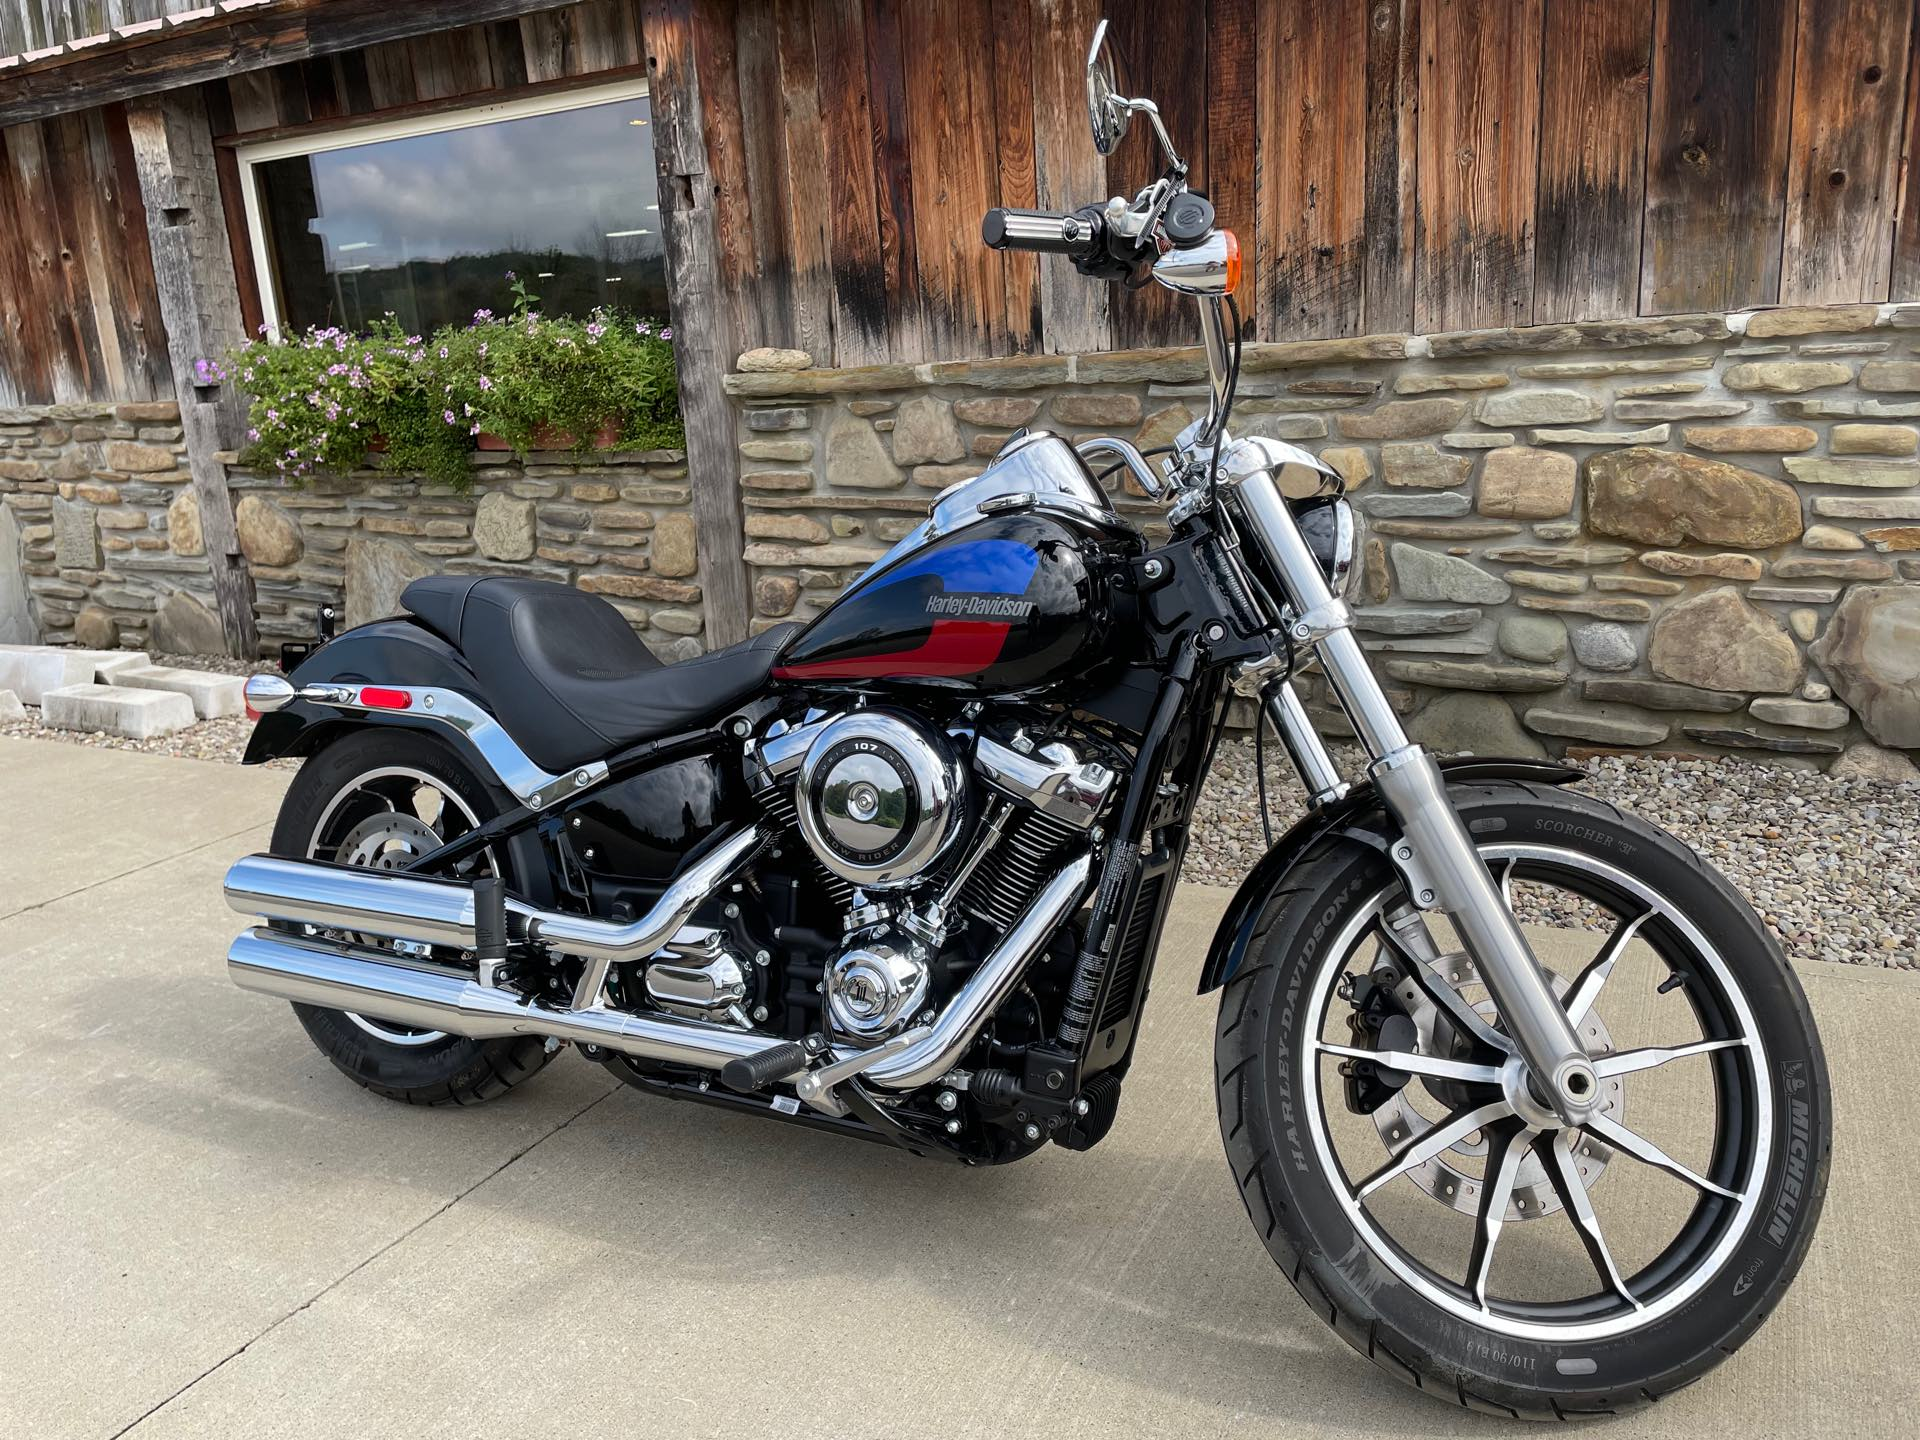 2018 Harley-Davidson Softail Low Rider at Arkport Cycles